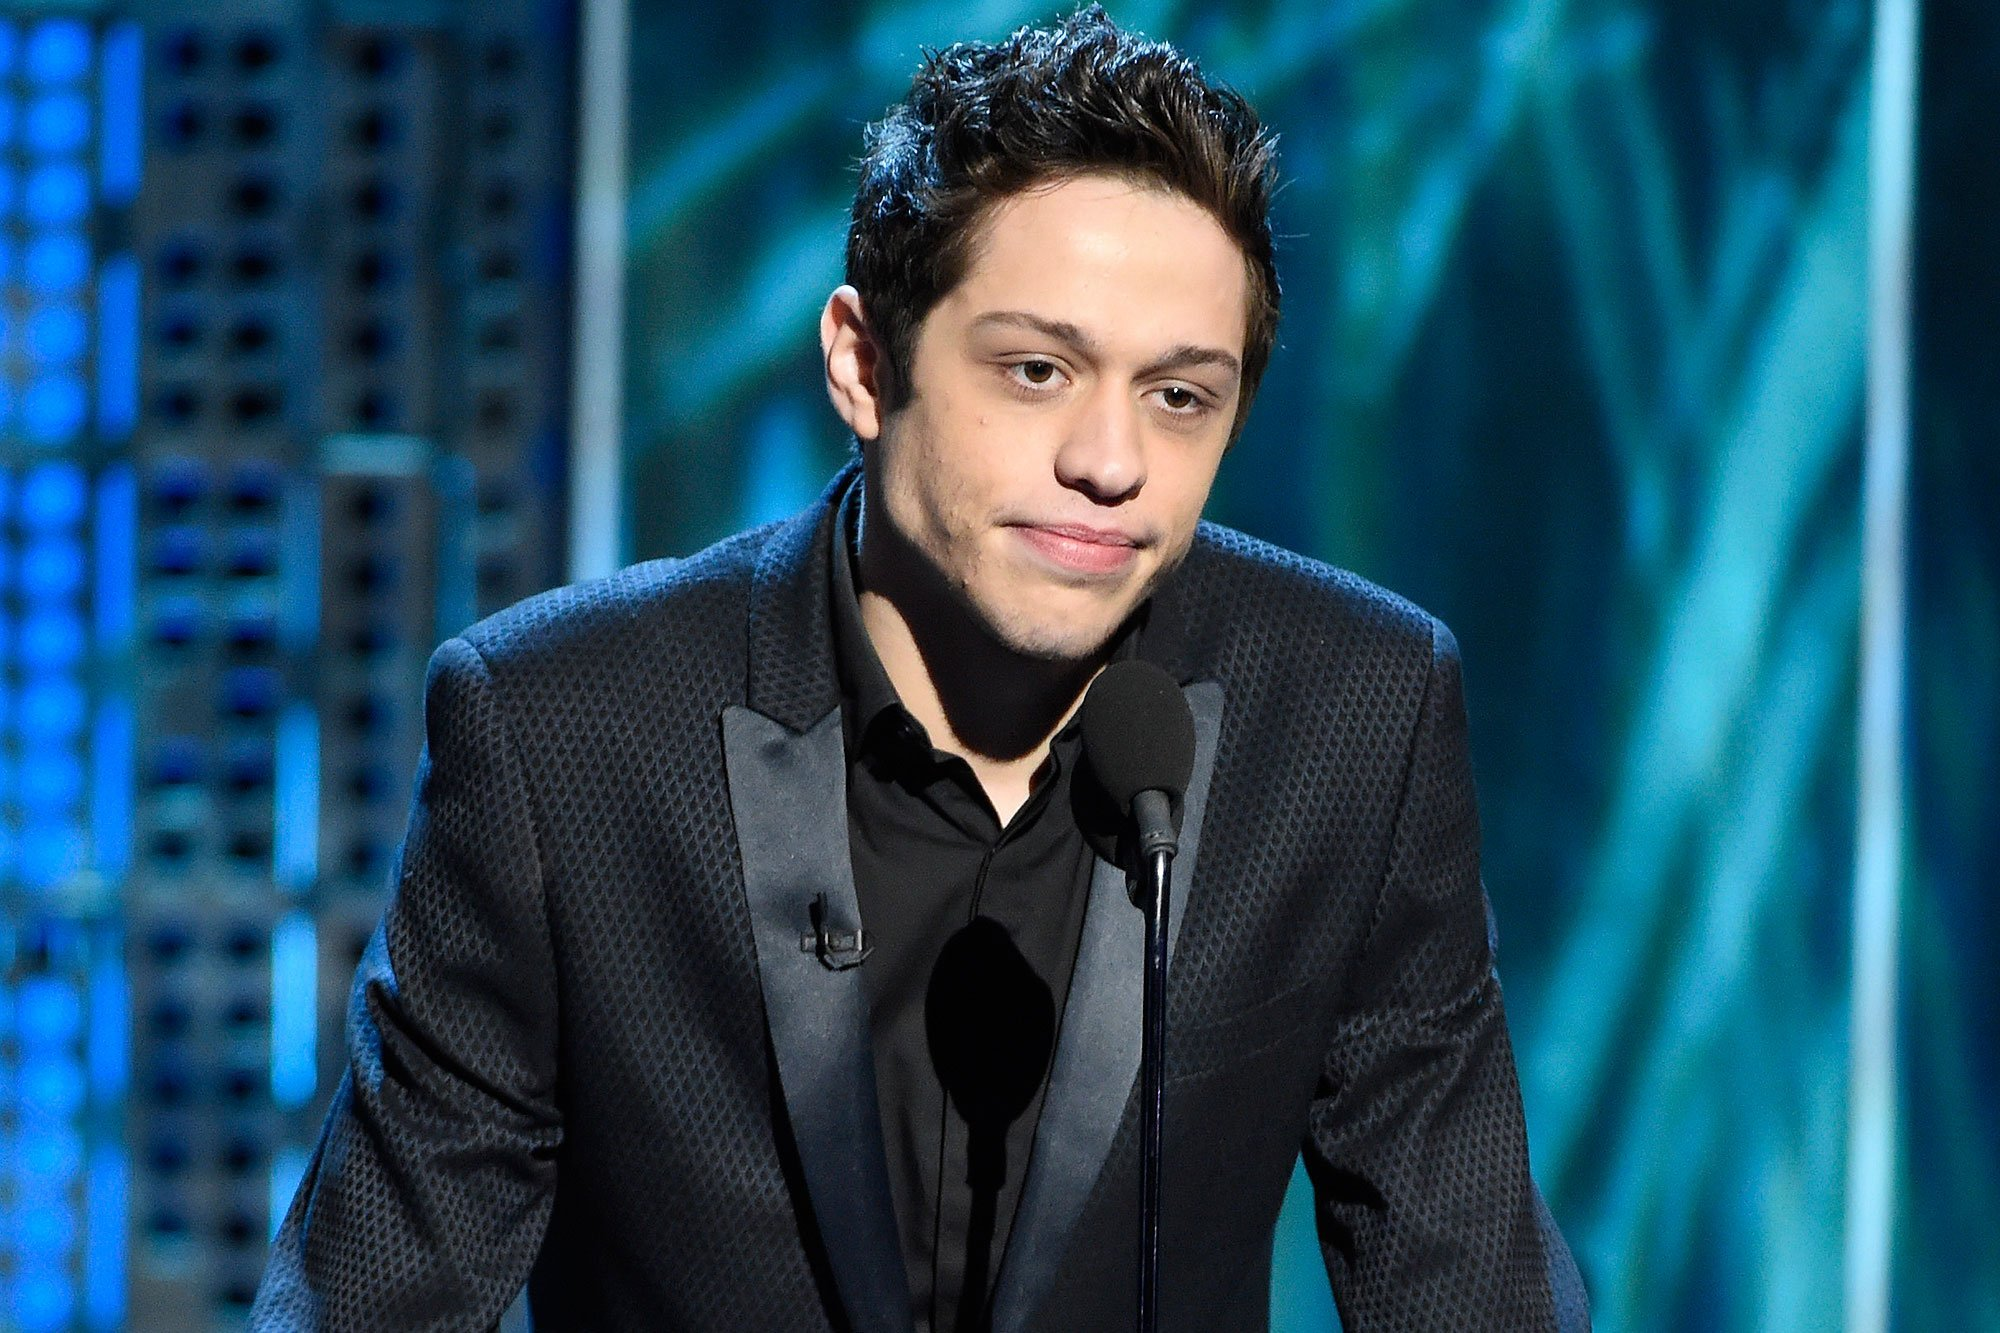 Pete Davidson Appears on Saturday Night Live Hours After Alarming Instagram Post